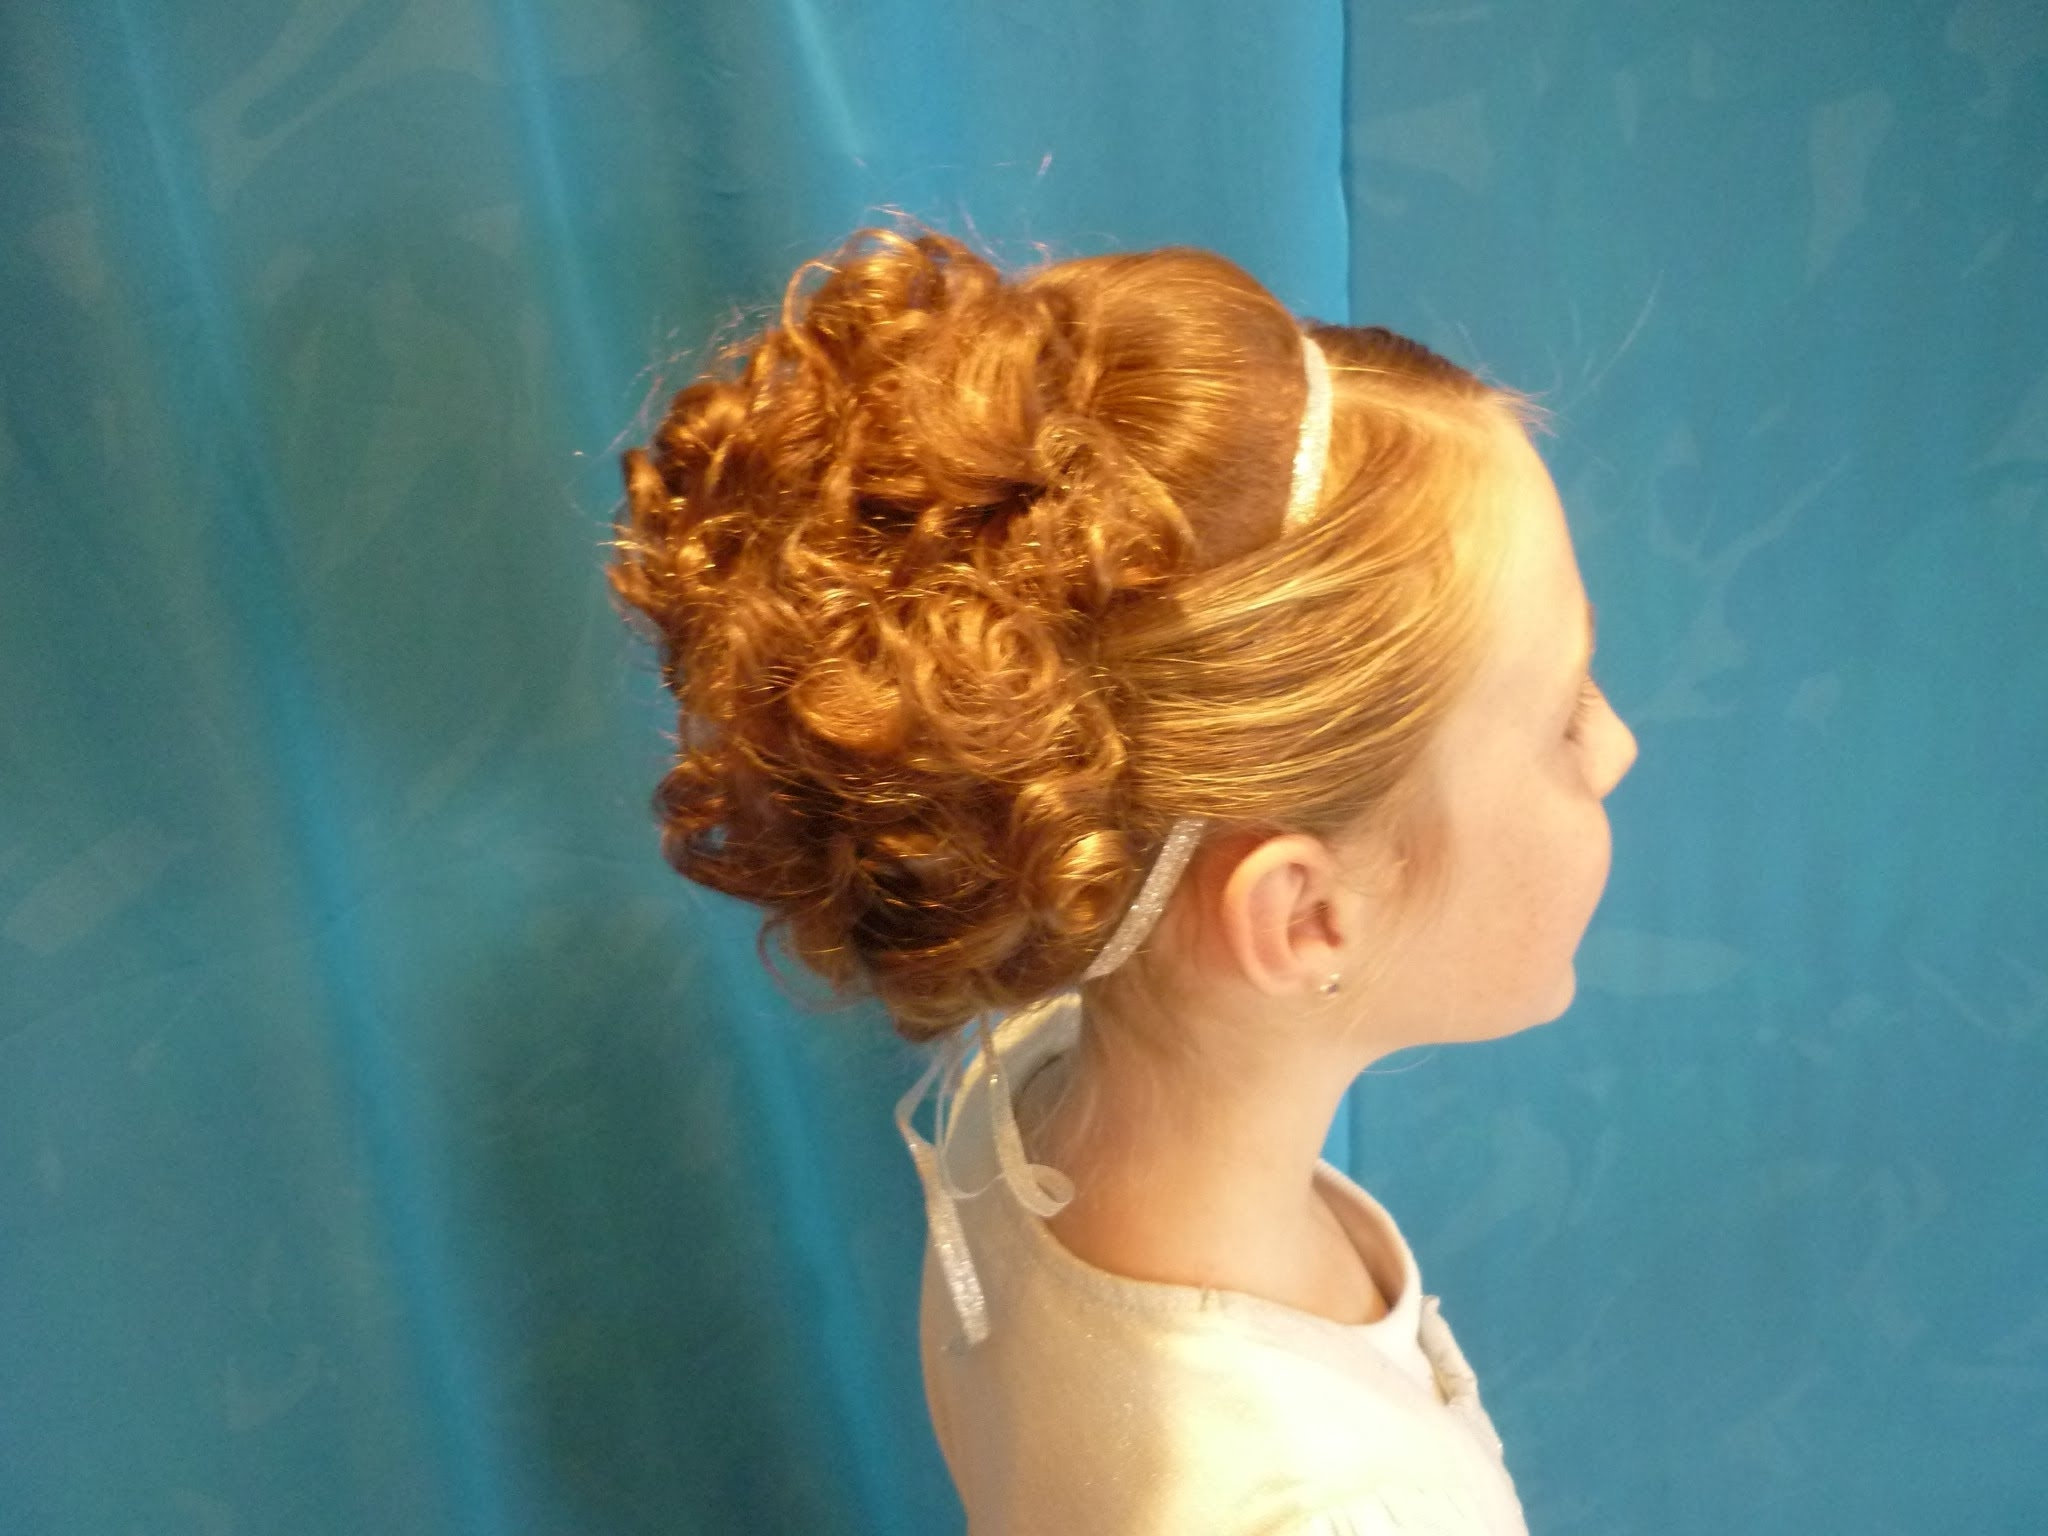 Elegant Updo With Curls For Medium Length Hair – Youtube Throughout 2017 Childrens Wedding Hairstyles For Short Hair (View 4 of 15)